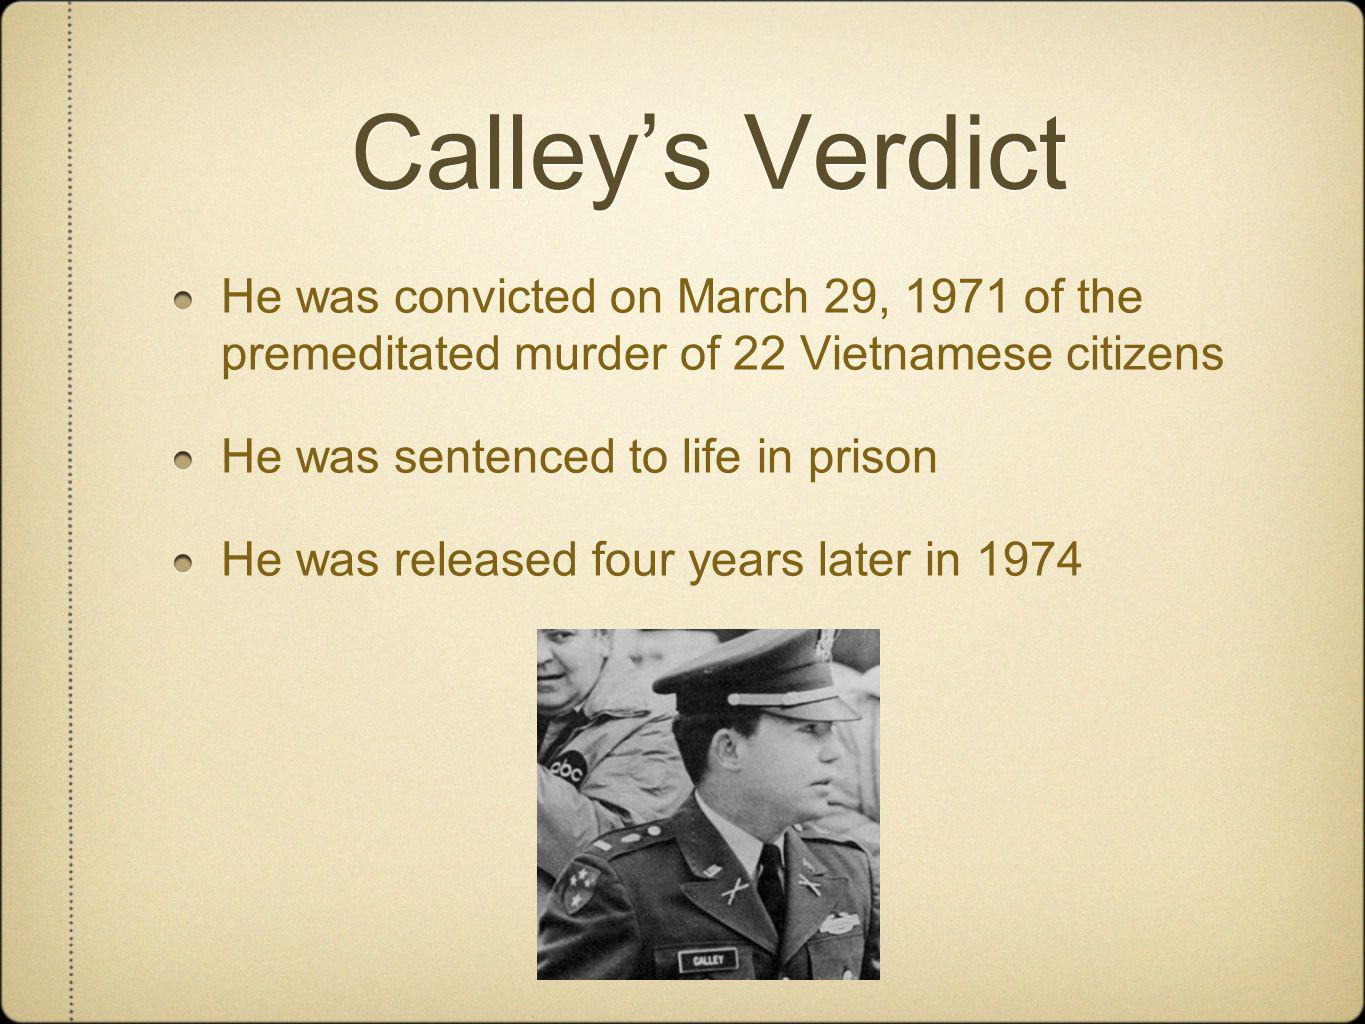 Calley's Verdict He was convicted on March 29, 1971 of the premeditated murder of 22 Vietnamese citizens.